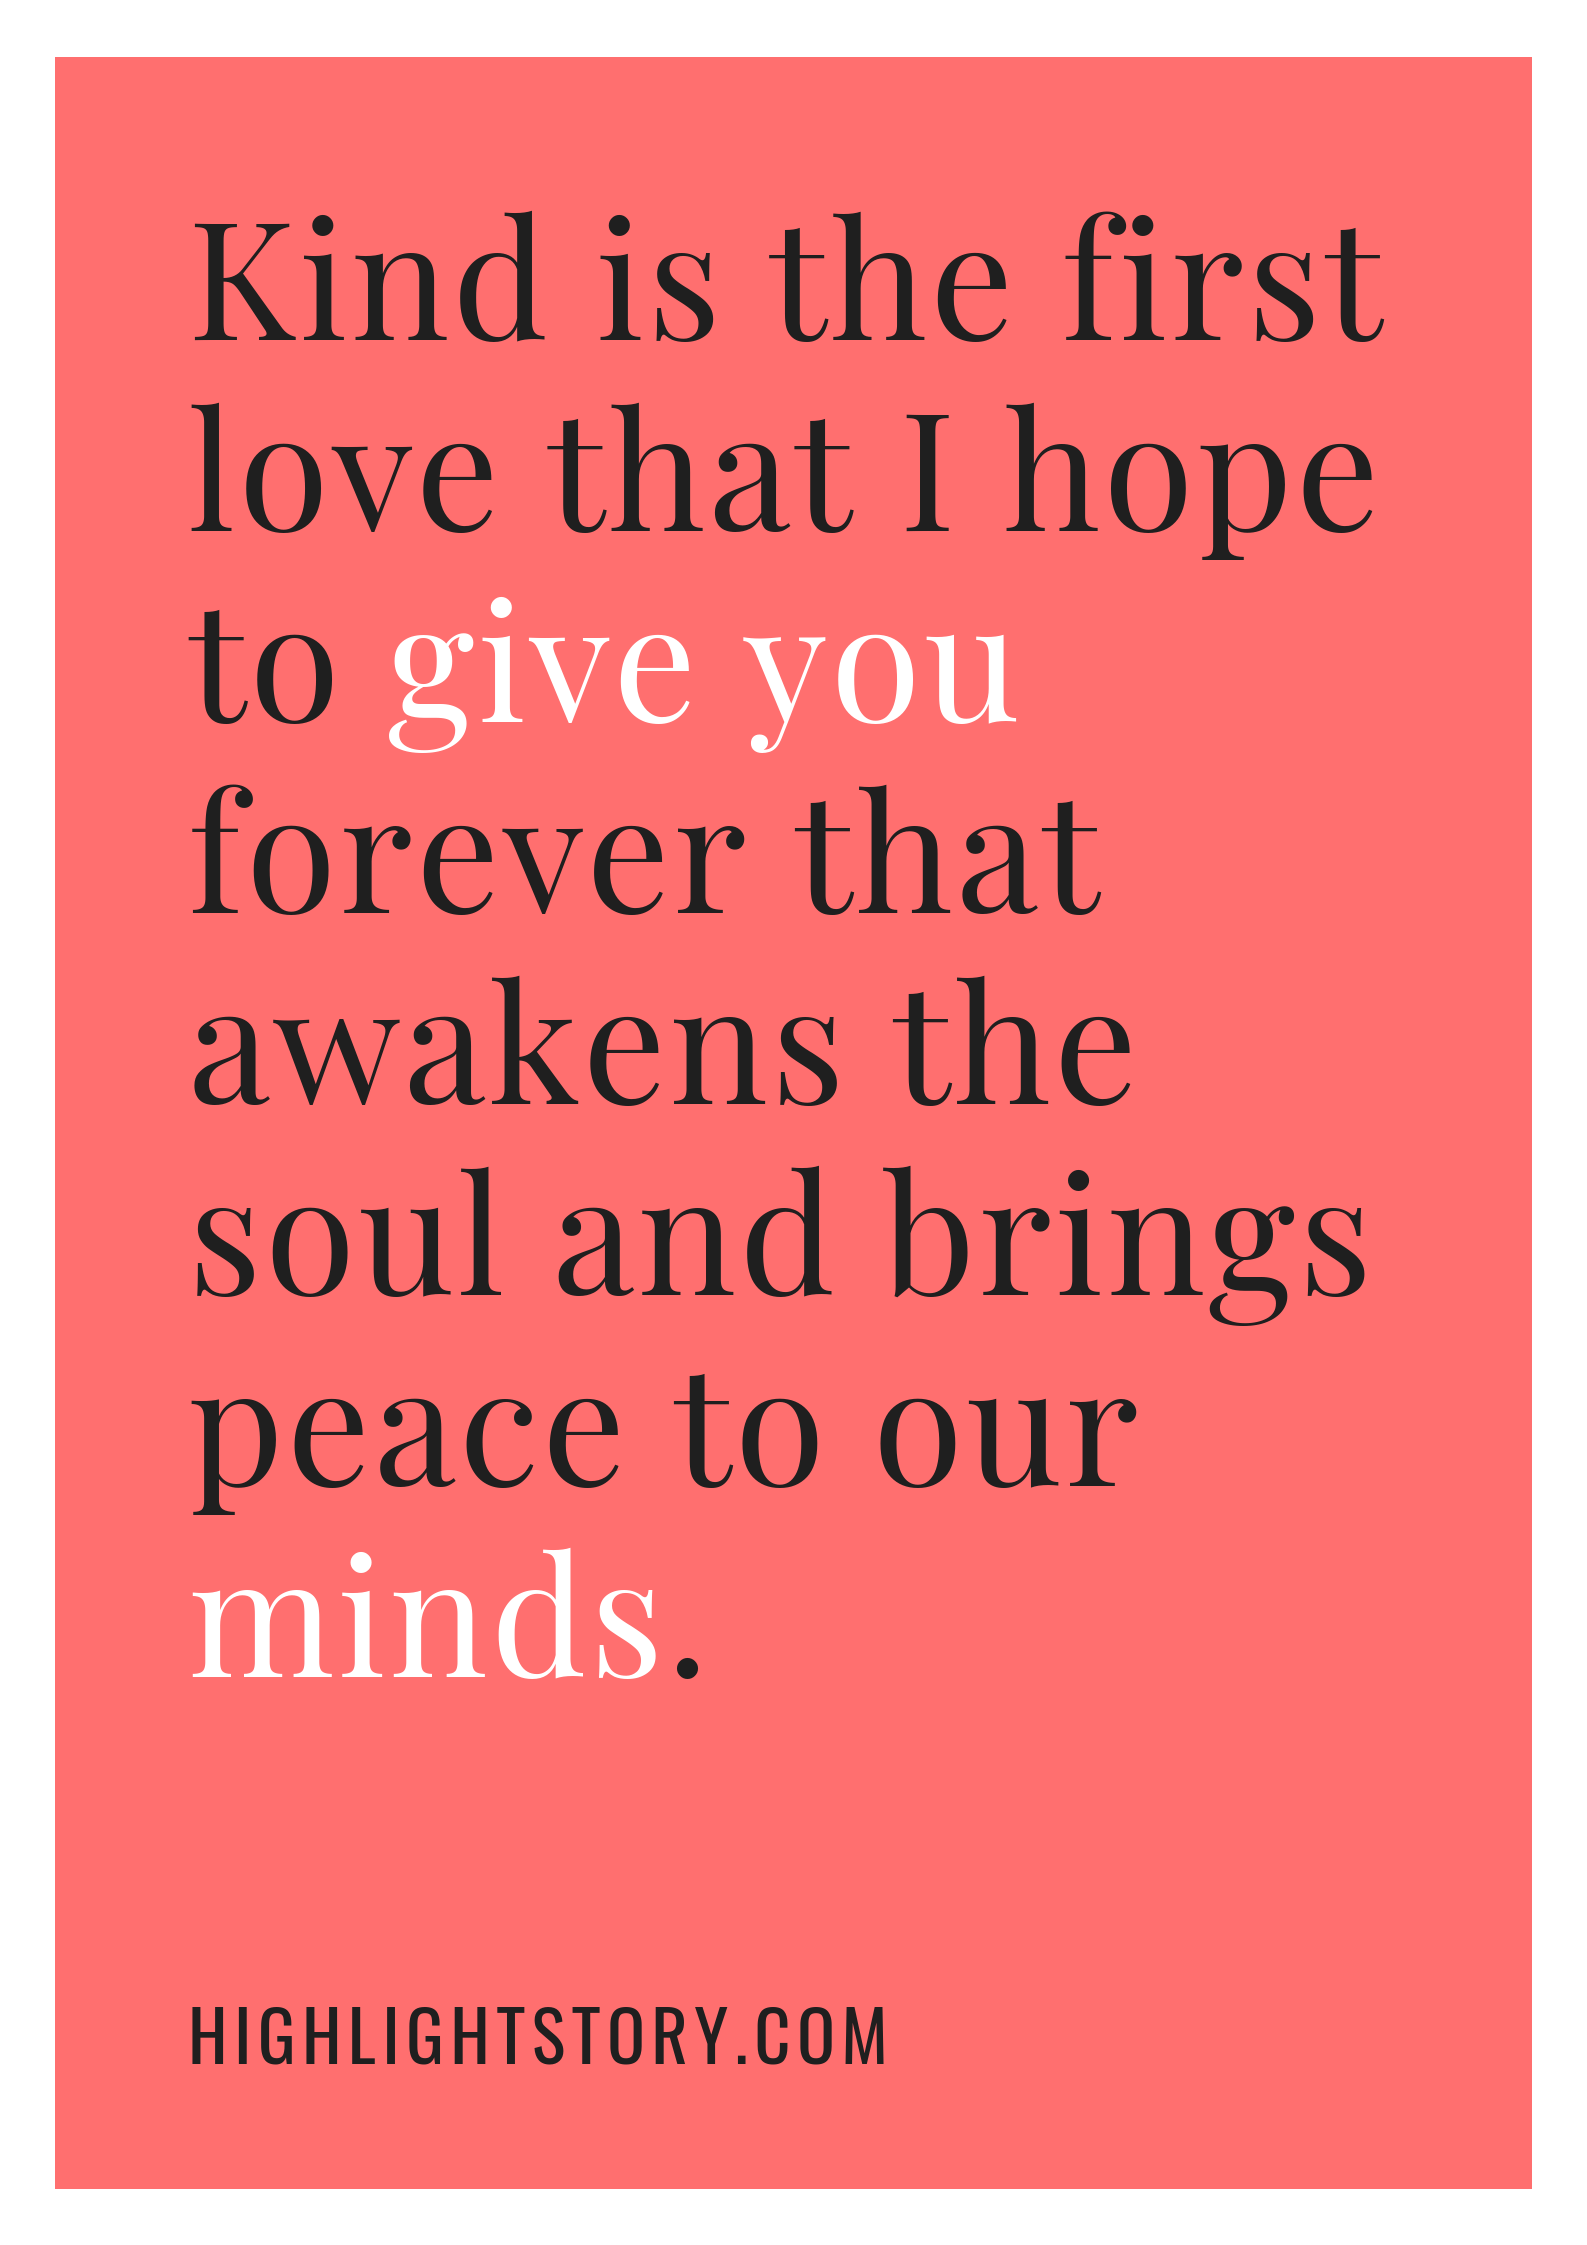 Kind is the first love that I hope to give you forever that awakens the soul and brings peace to our minds.